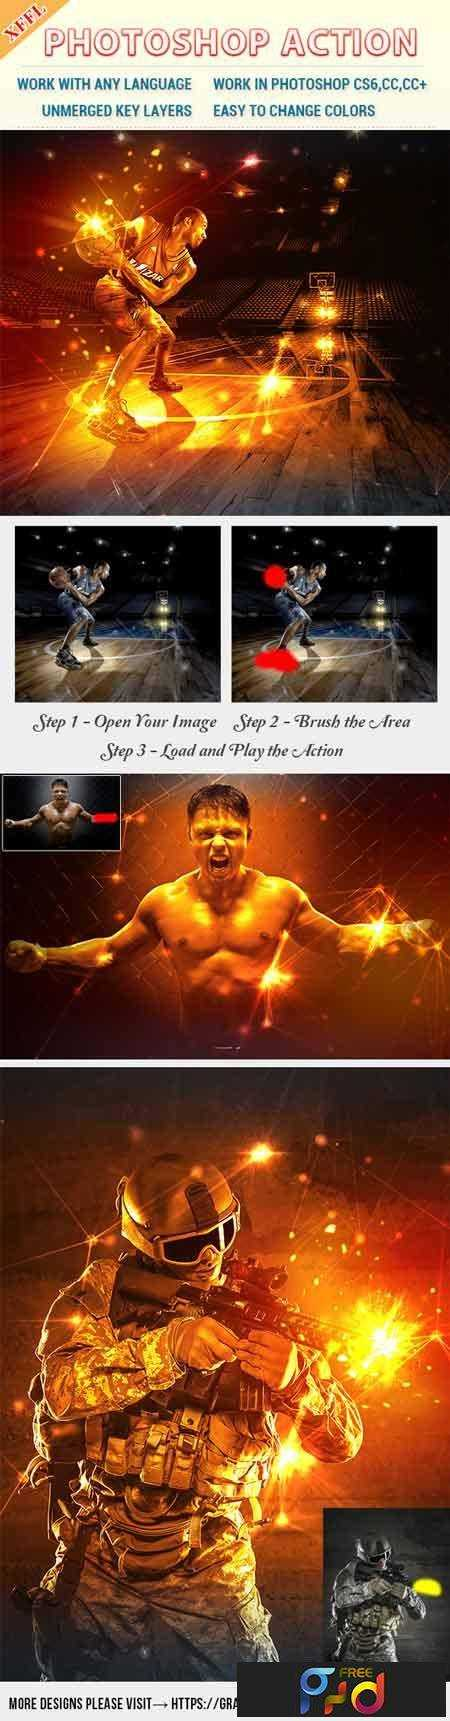 1805089 Spark Facular Effect Photoshop Action 21629969 1